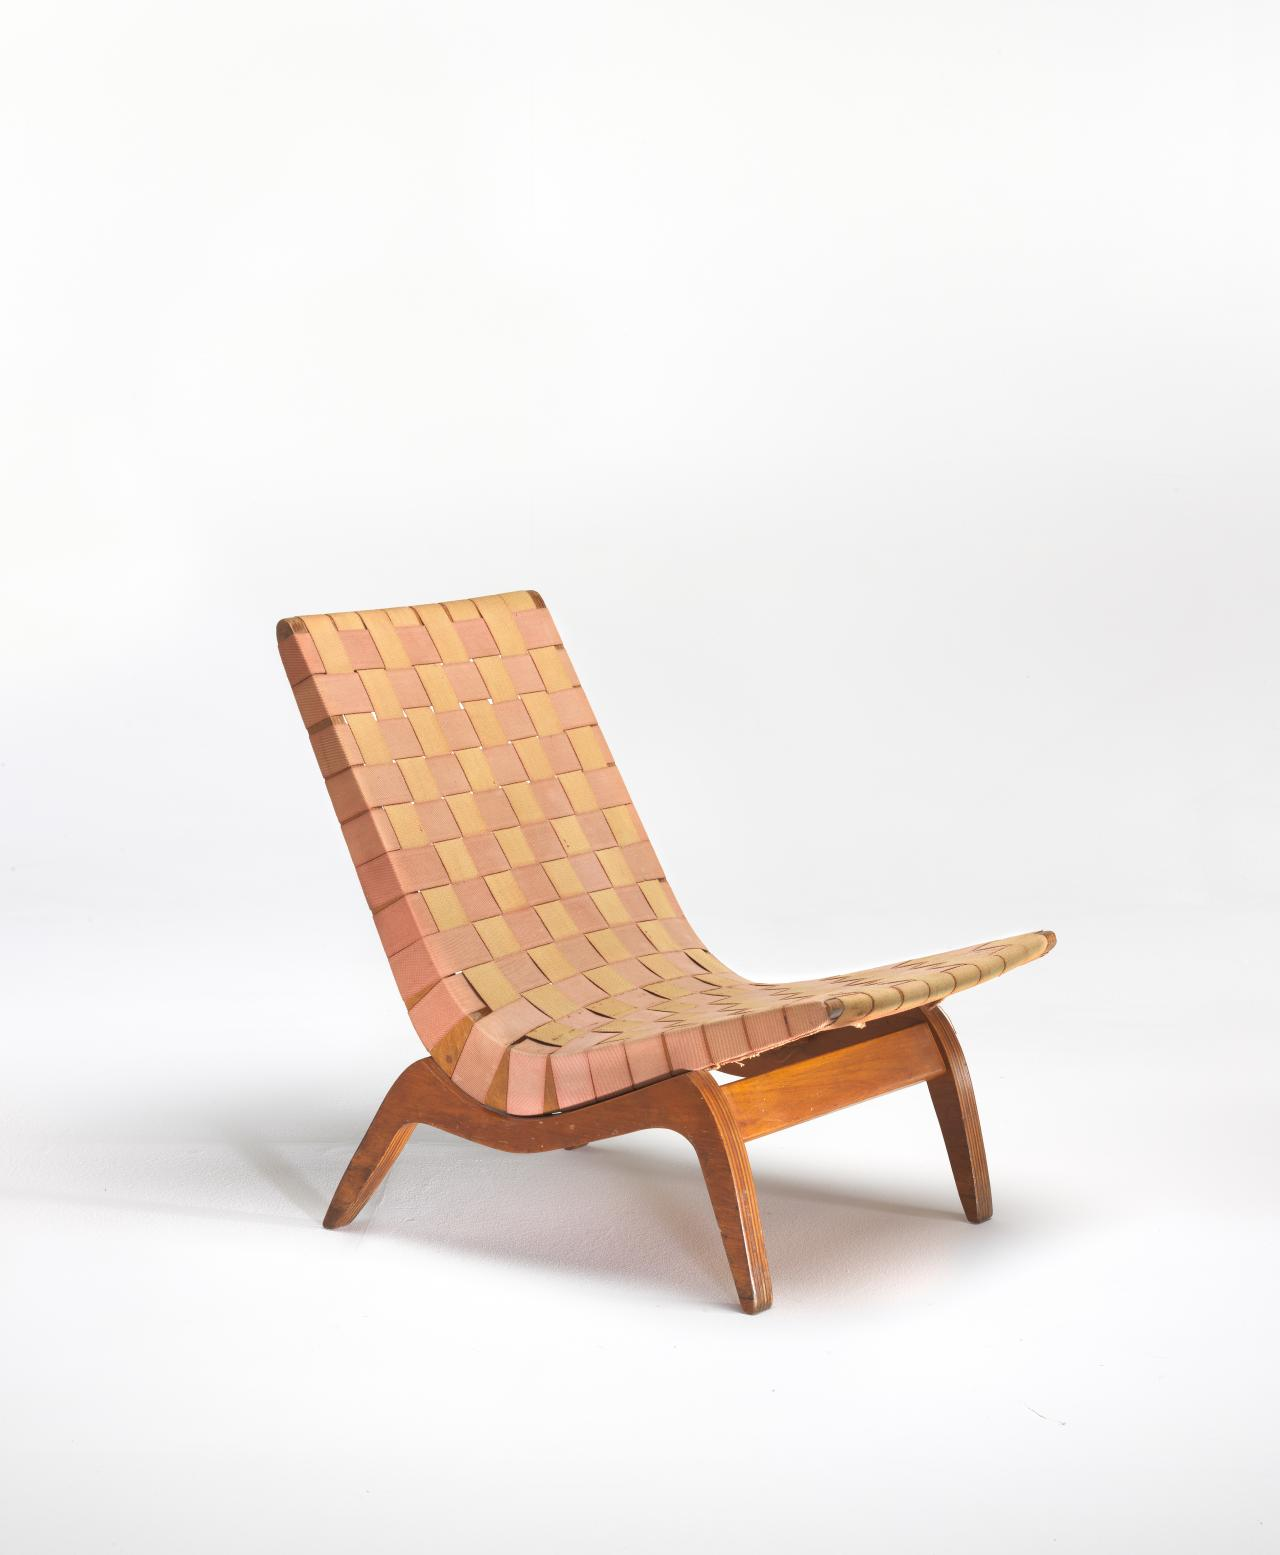 Relaxation chair